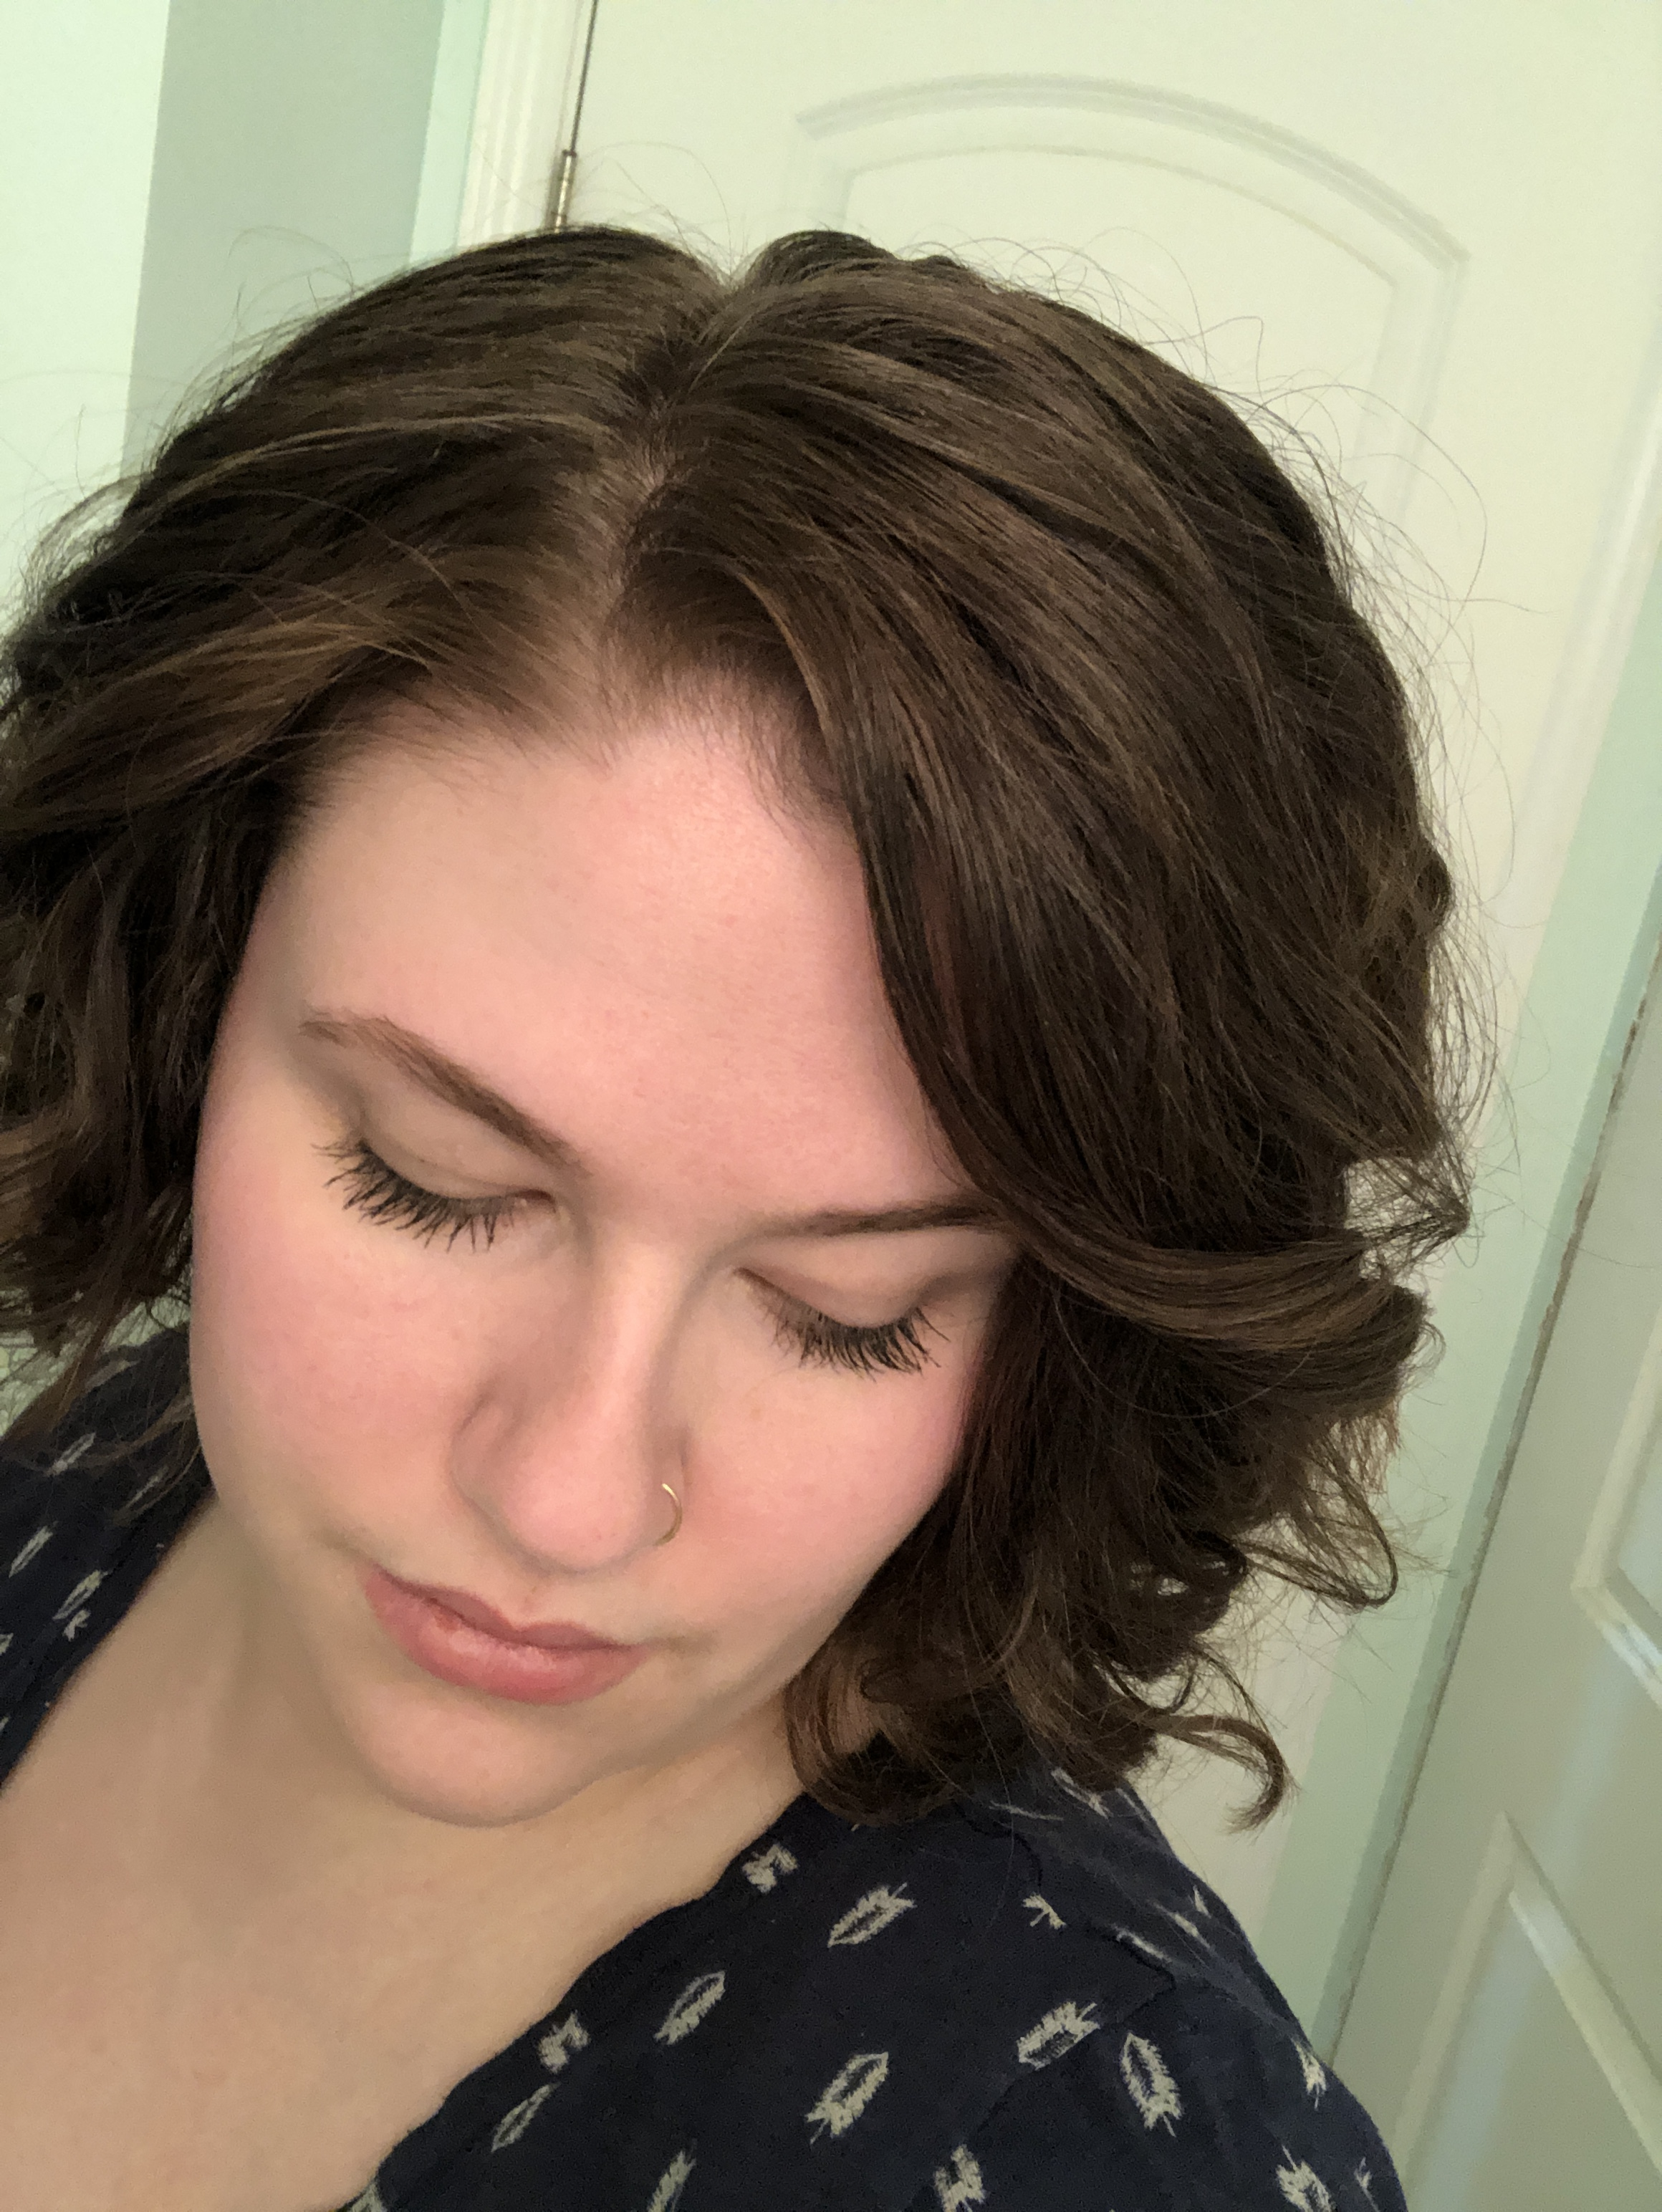 Used the FLOW Root Reboot & Texturizing spray on day four hair - super impressed with the result!